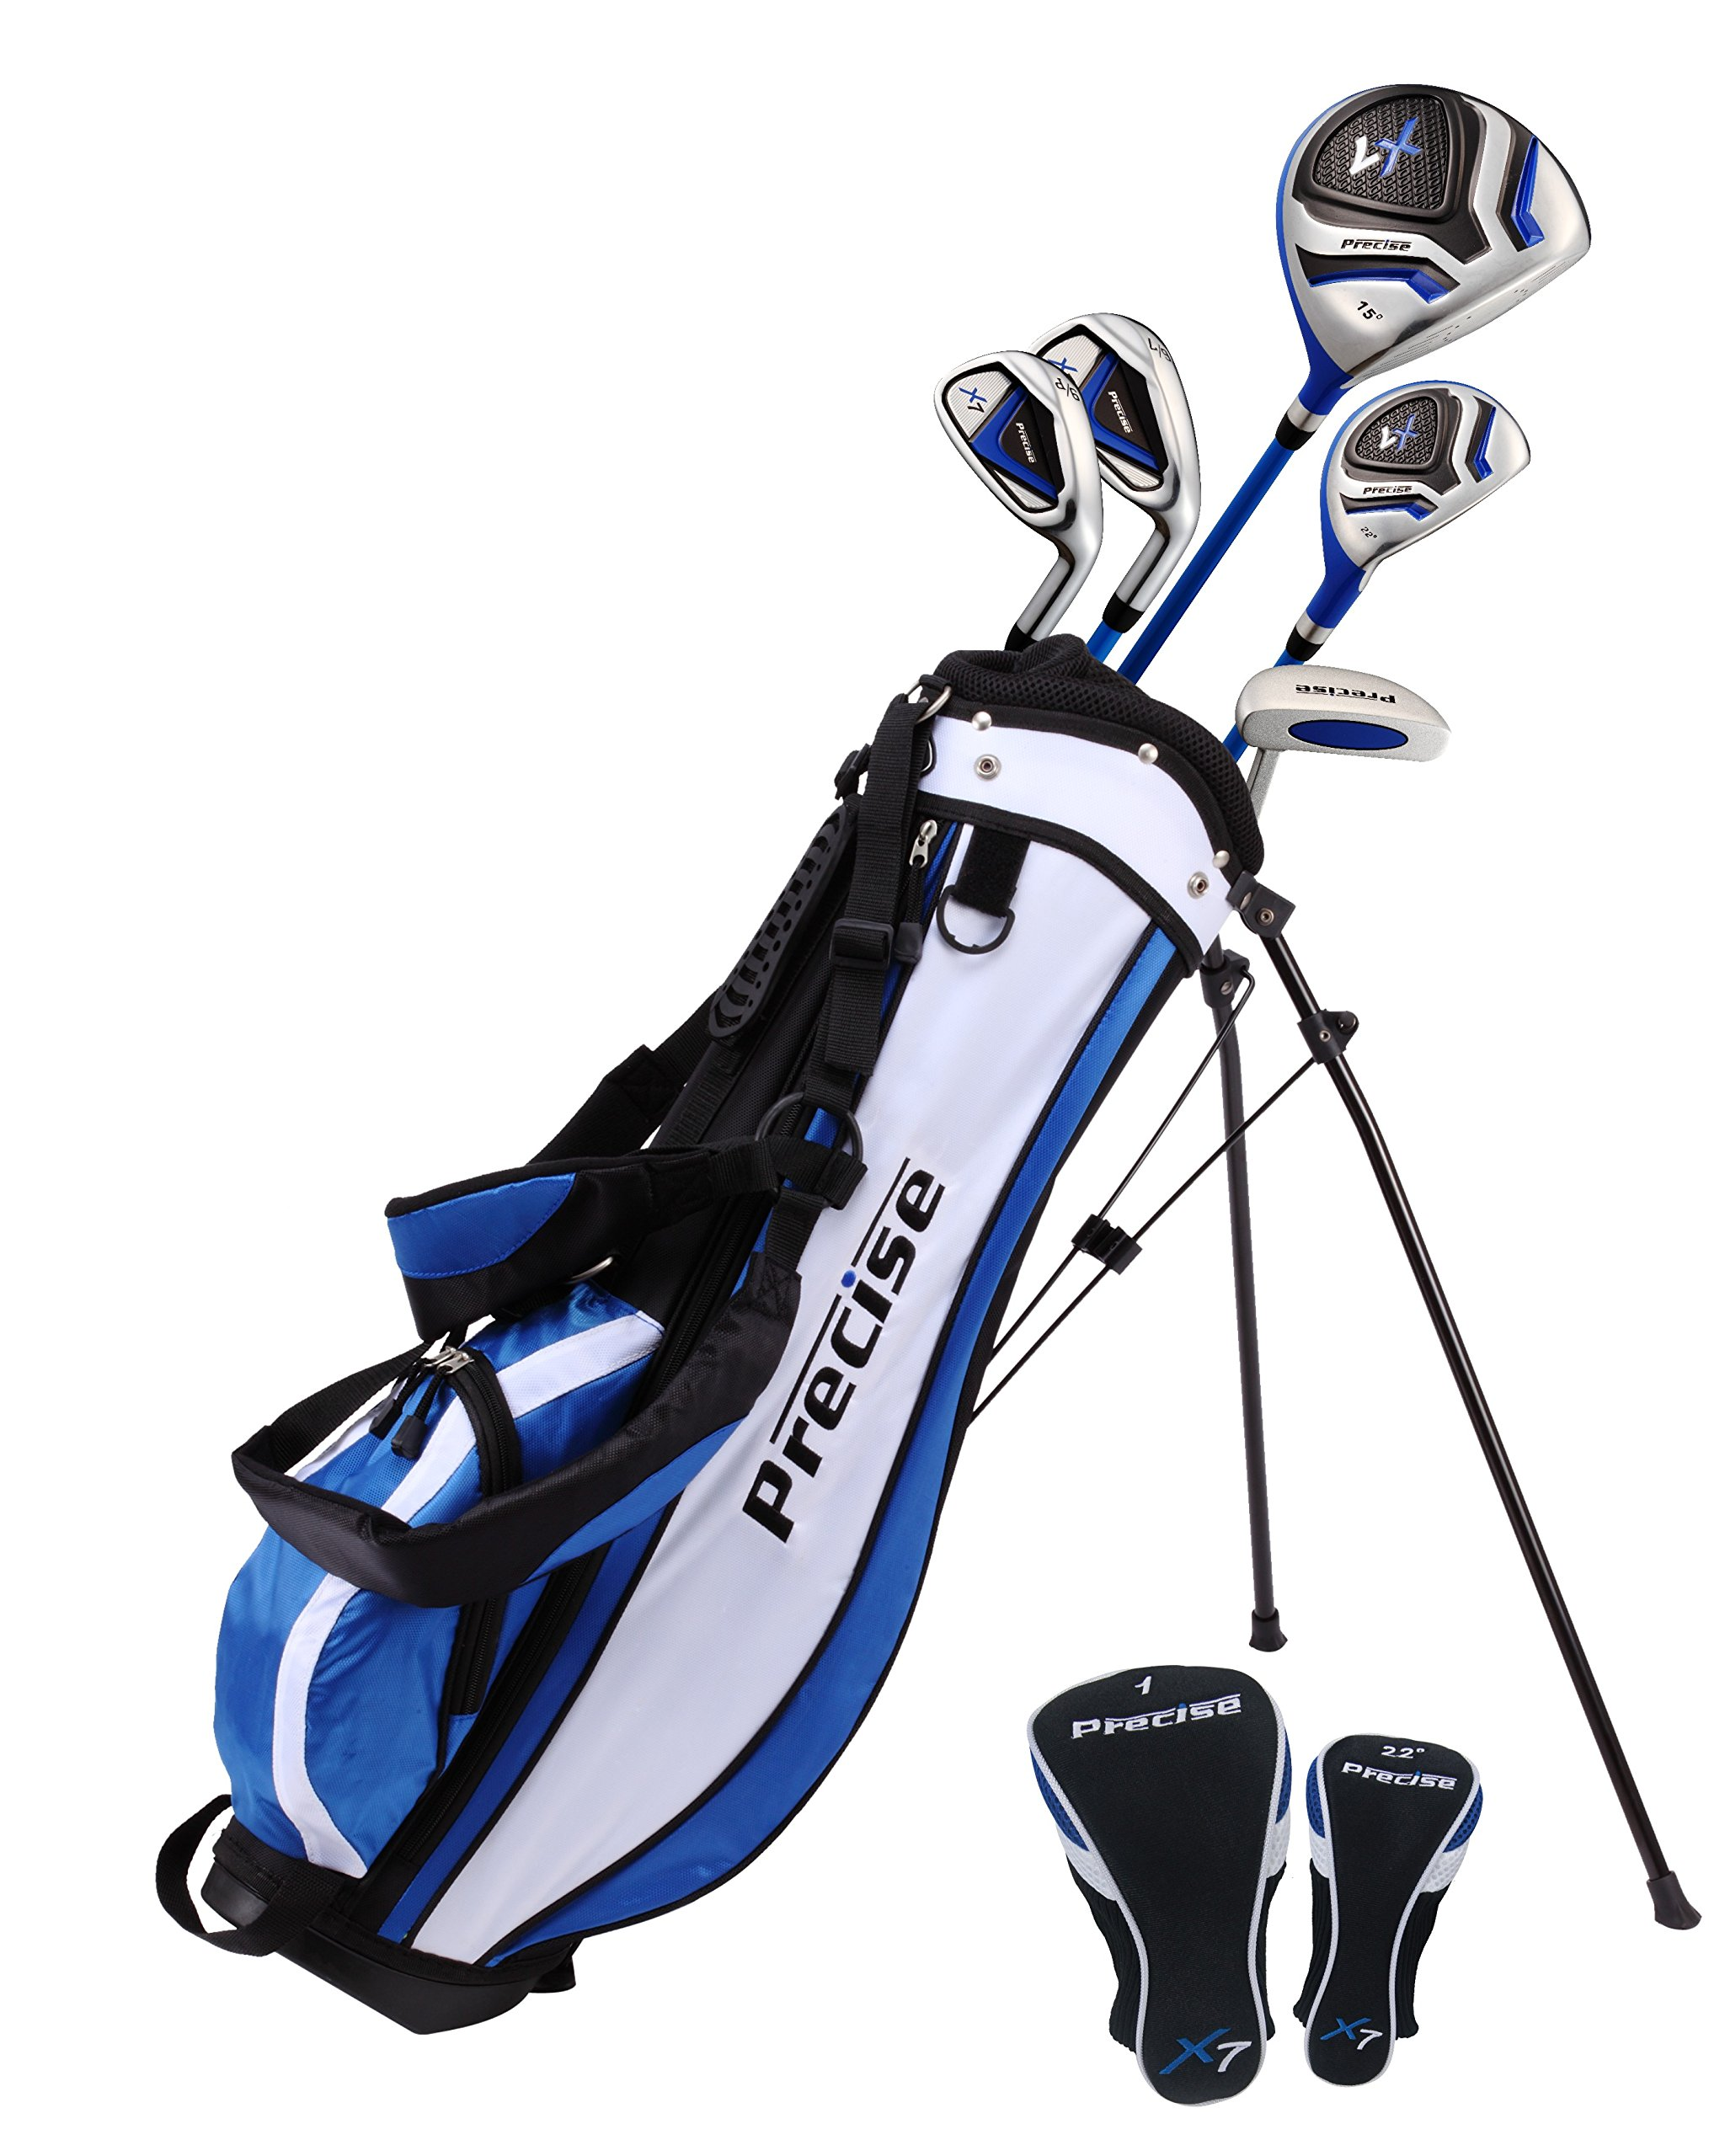 Distinctive Right Handed Junior Golf Club Set for Age 9 to 12 (Height 4'4'' to 5') Set Includes: Driver (15''), Hybrid Wood (22, 2 Irons, Putter, Bonus Stand Bag & 2 Headcovers by Precise